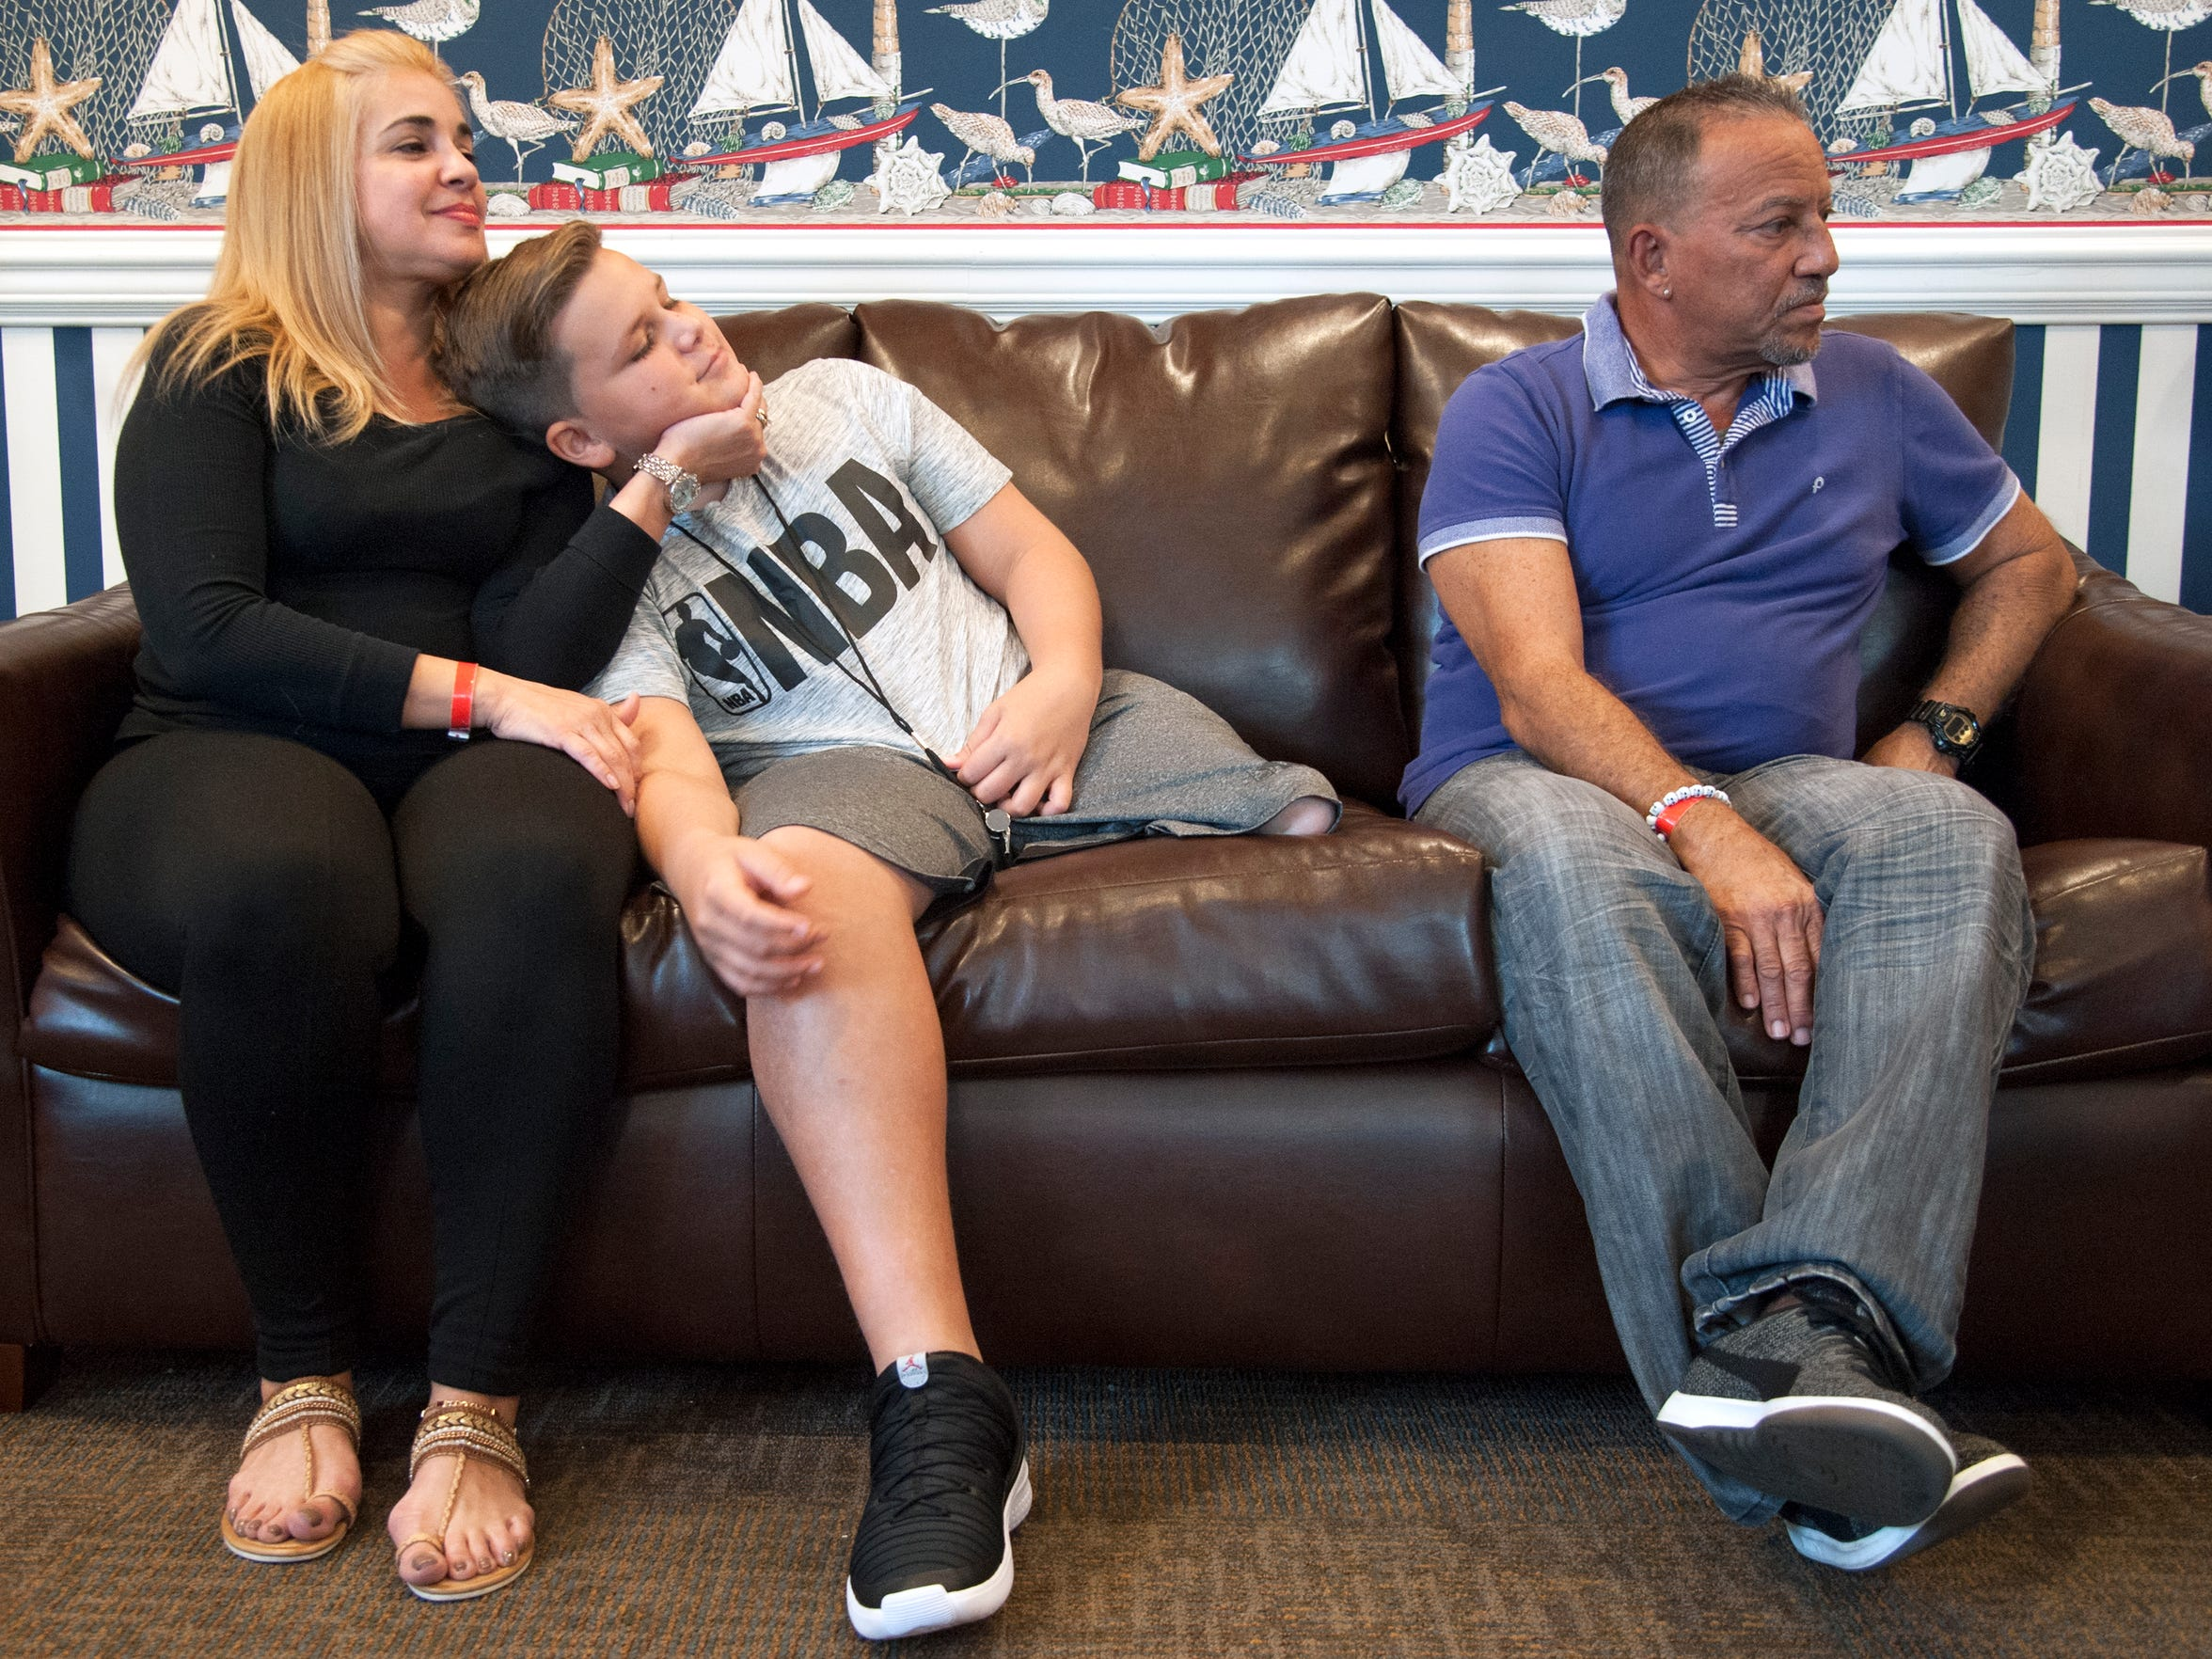 Luis Chiclana, 12 of Puerto Rico, sits with his mother Joana and father Angel in the Ronald McDonald House in Camden.   Luis was born without a tiba and fibia and is staying at the Ronald McDonald House in Camden with his parents while undergoing treatment, and will soon receive a prosthetic leg.  Luis and his parents will be going back to Puerto Rico later this month.  Luis dreams of challenging his idol Michael Jordan to a game.